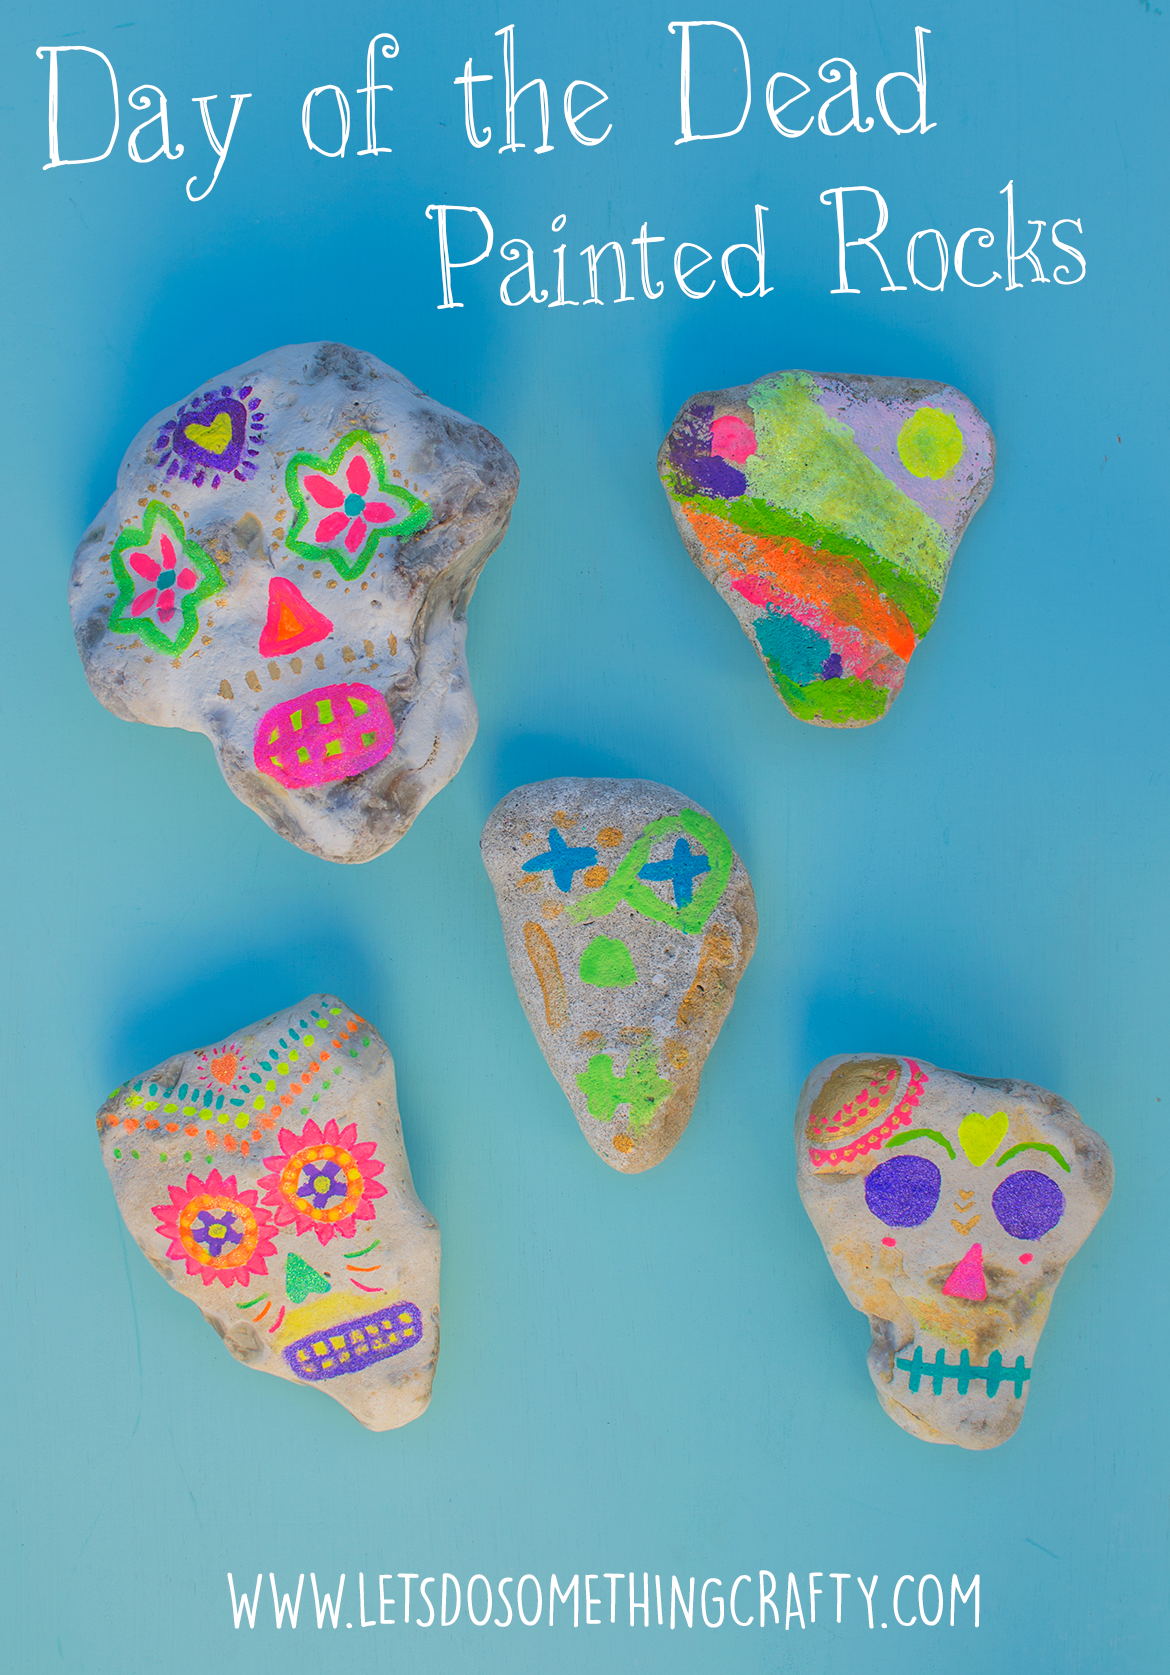 painted-rocks-day-of-the-dead